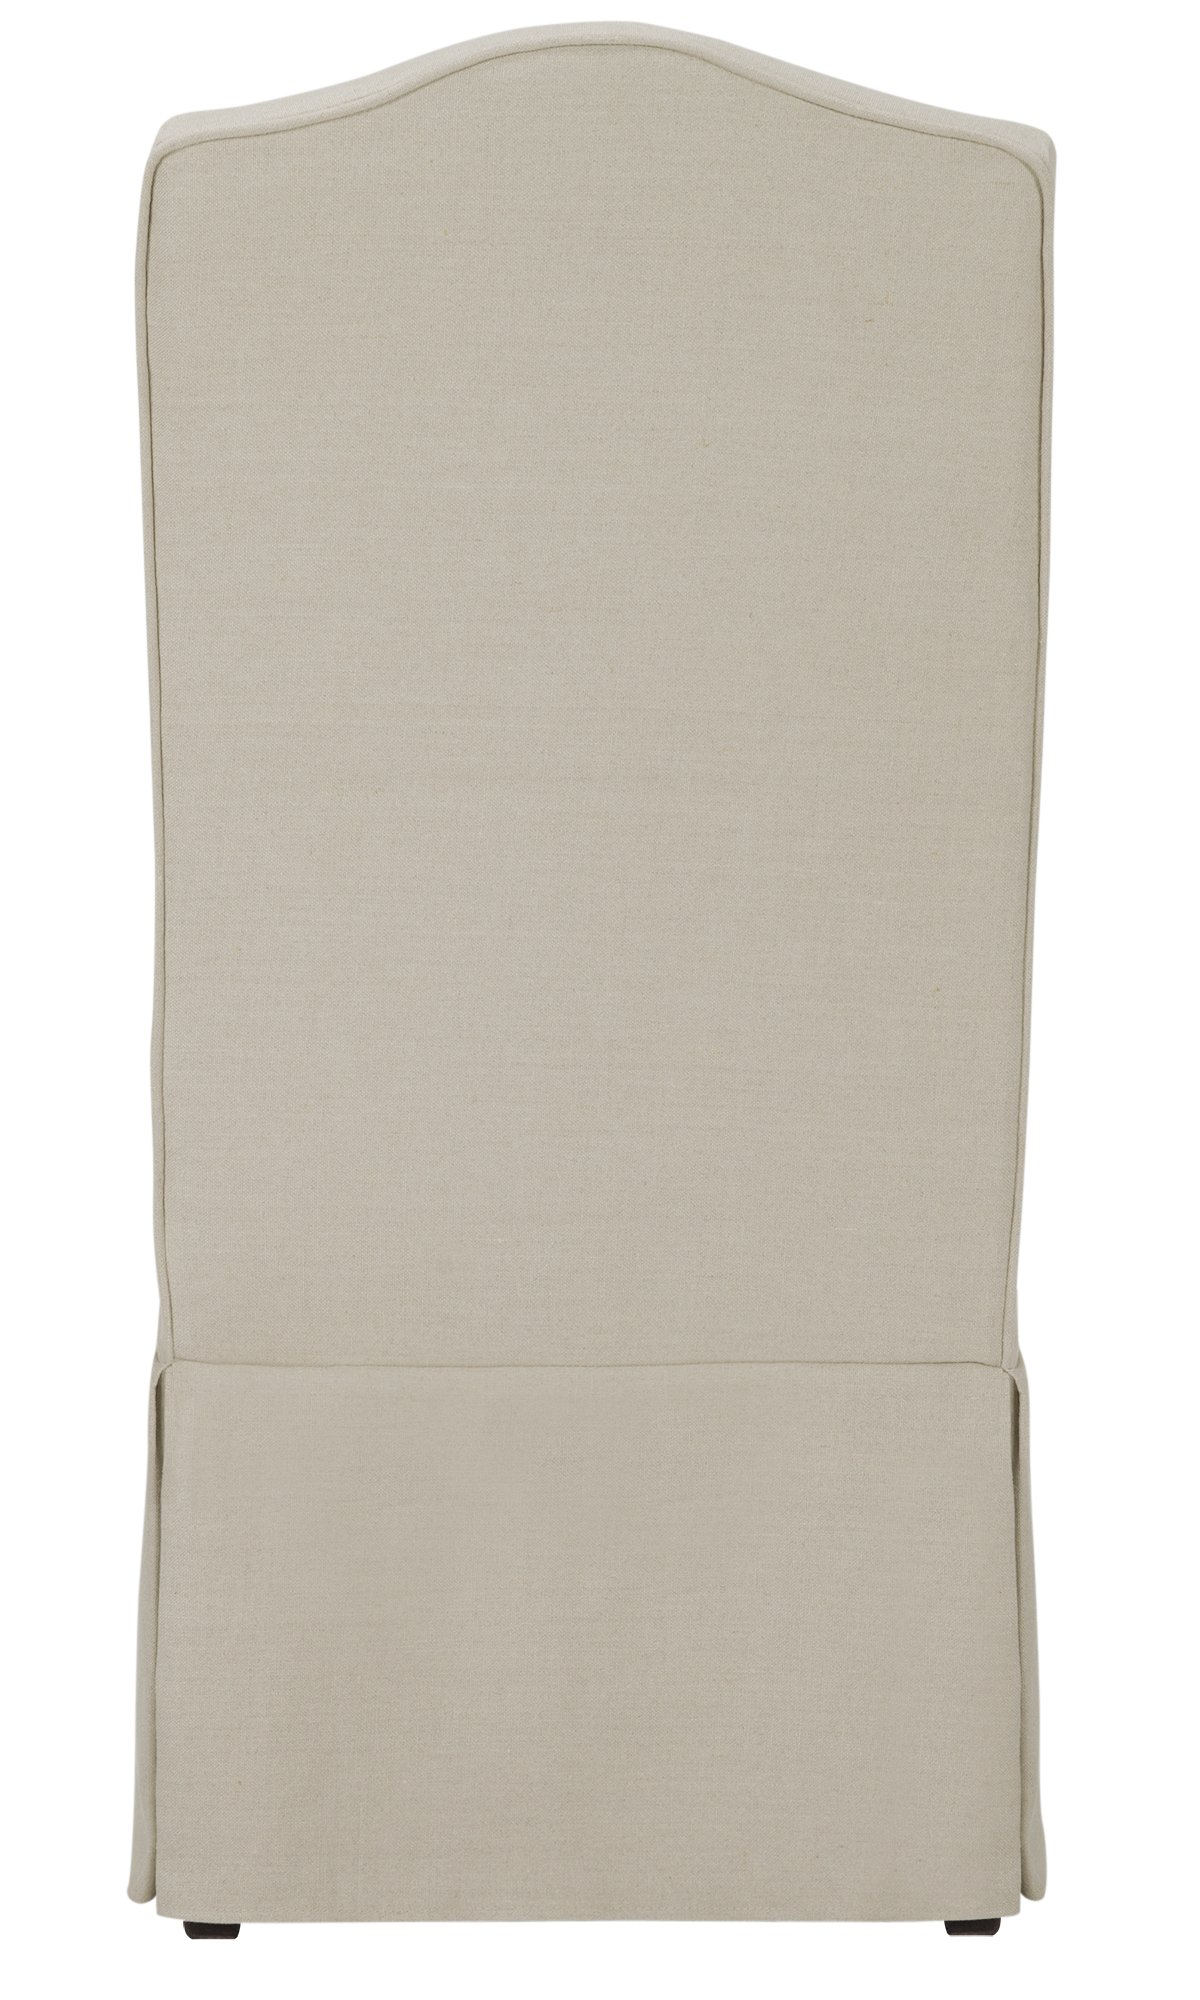 Aberdeen Beige Fabric Upholstered Side Chair